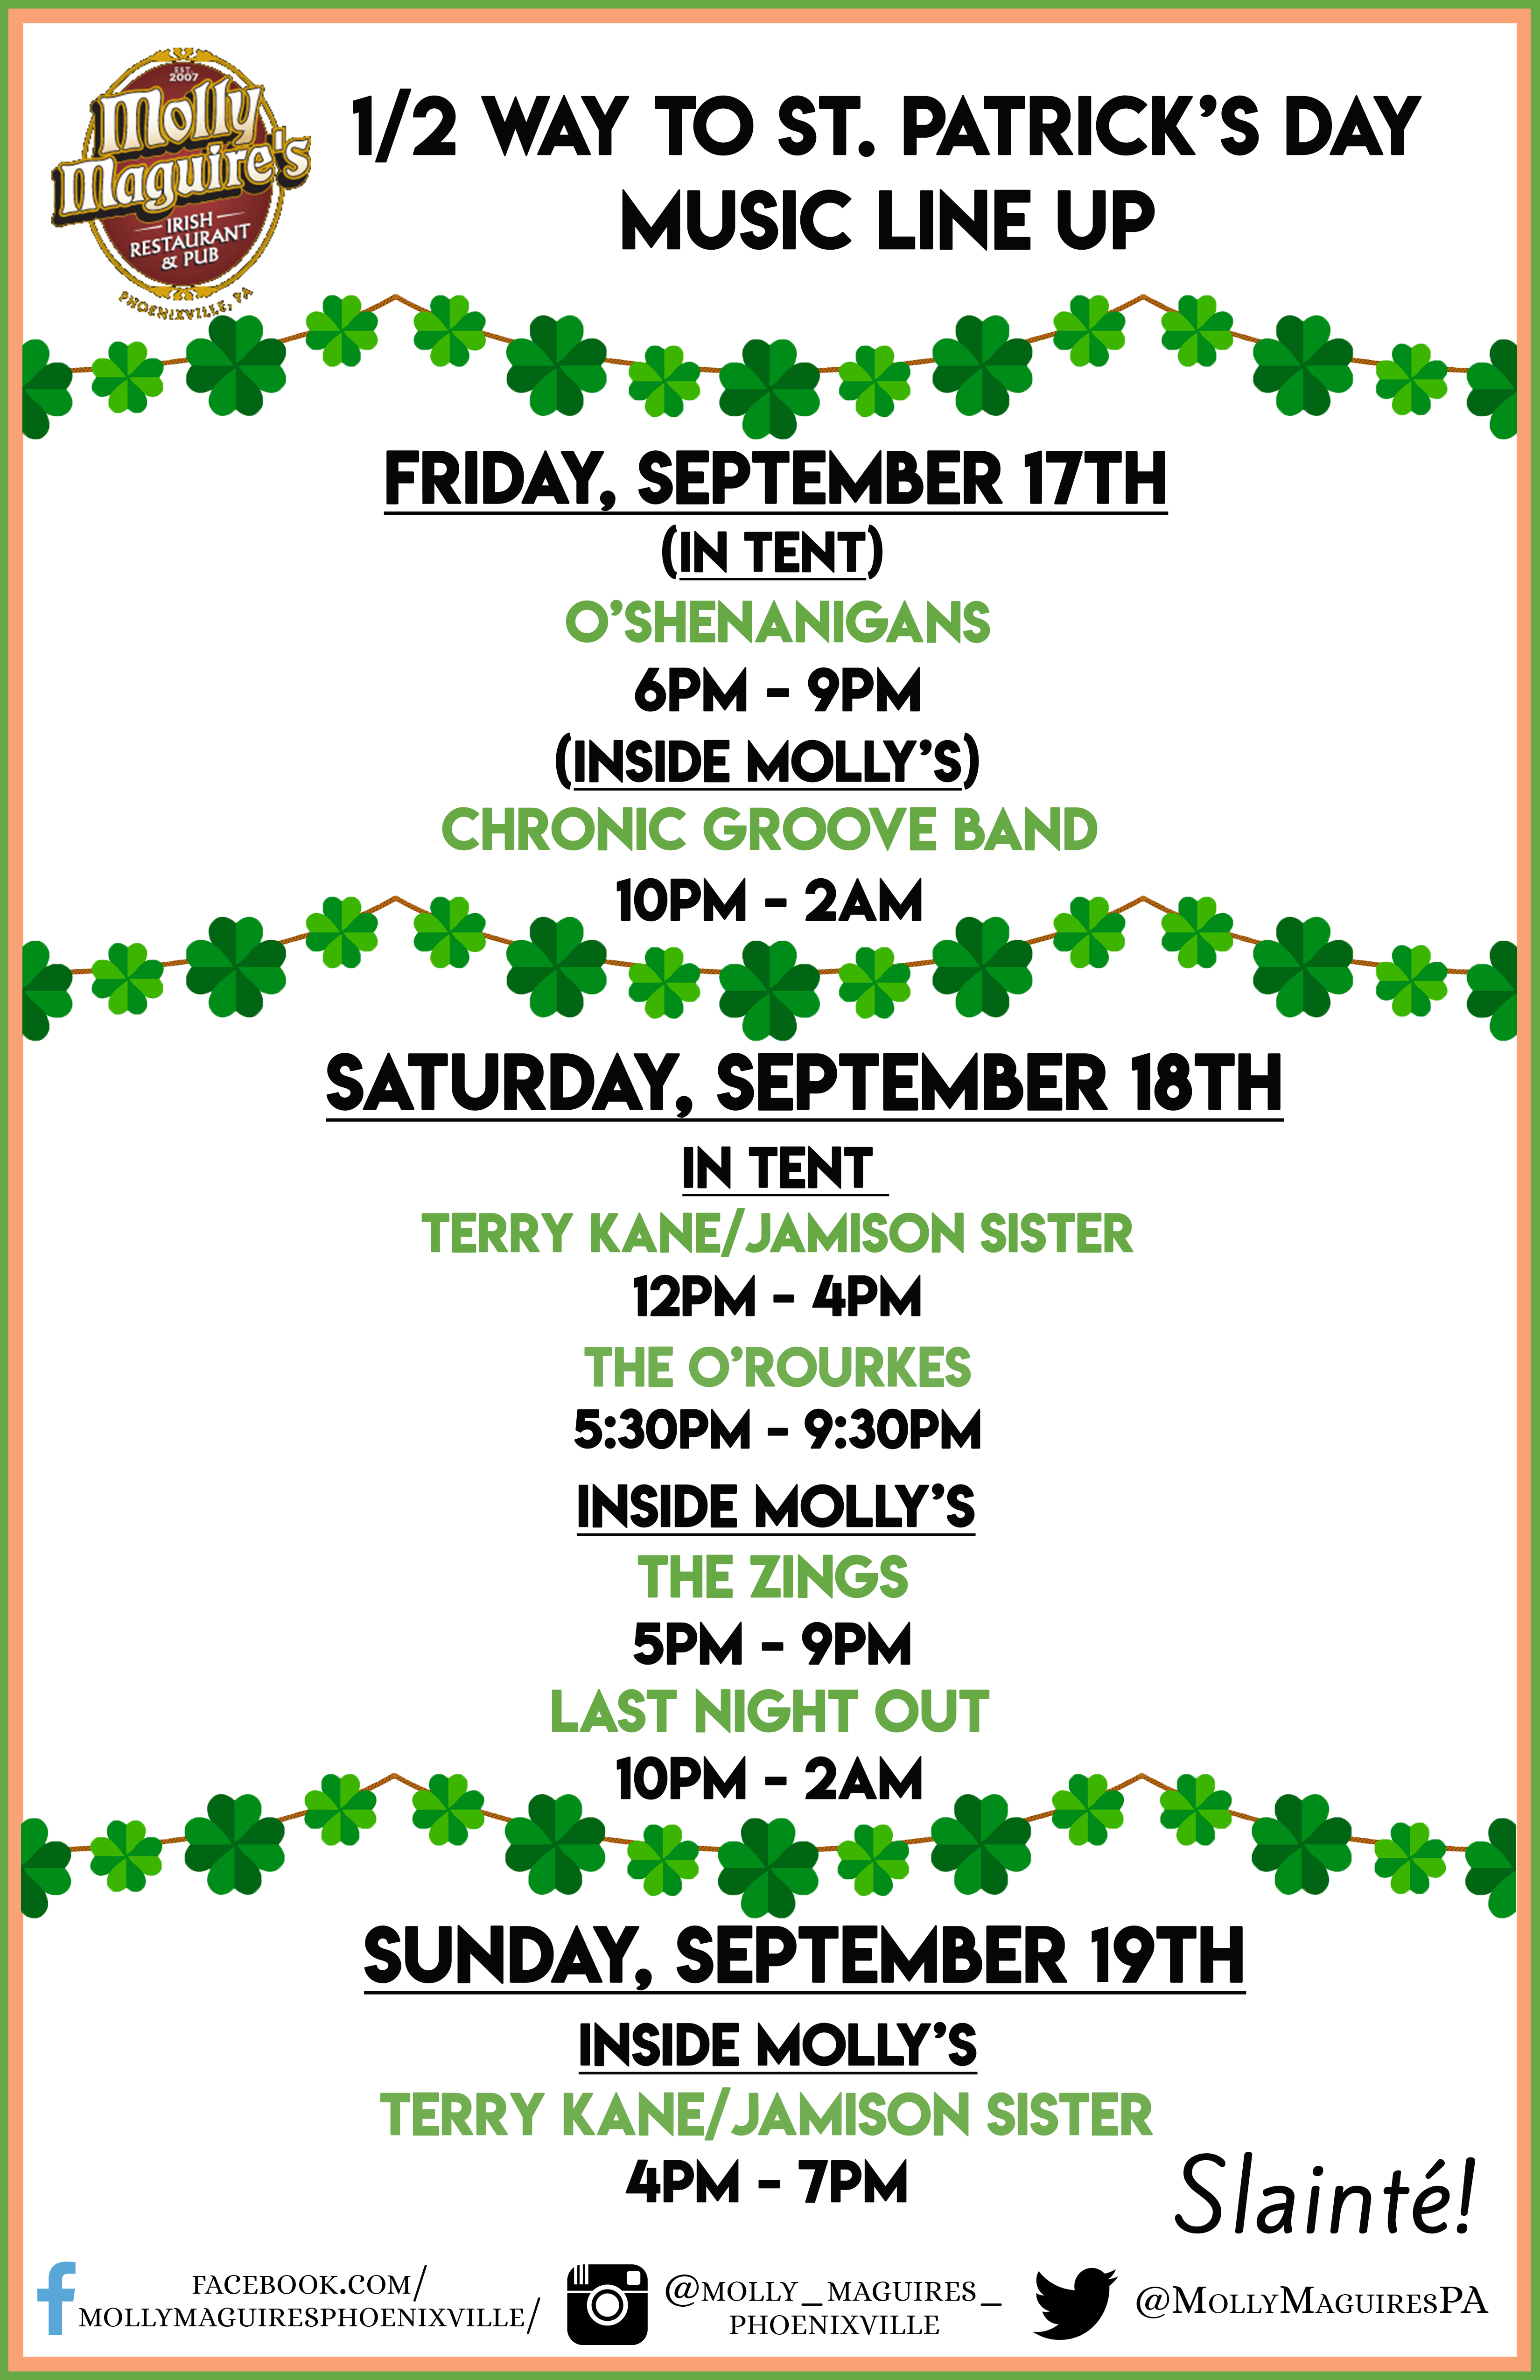 1/2 Way to St. Patrick's Day Music Line up